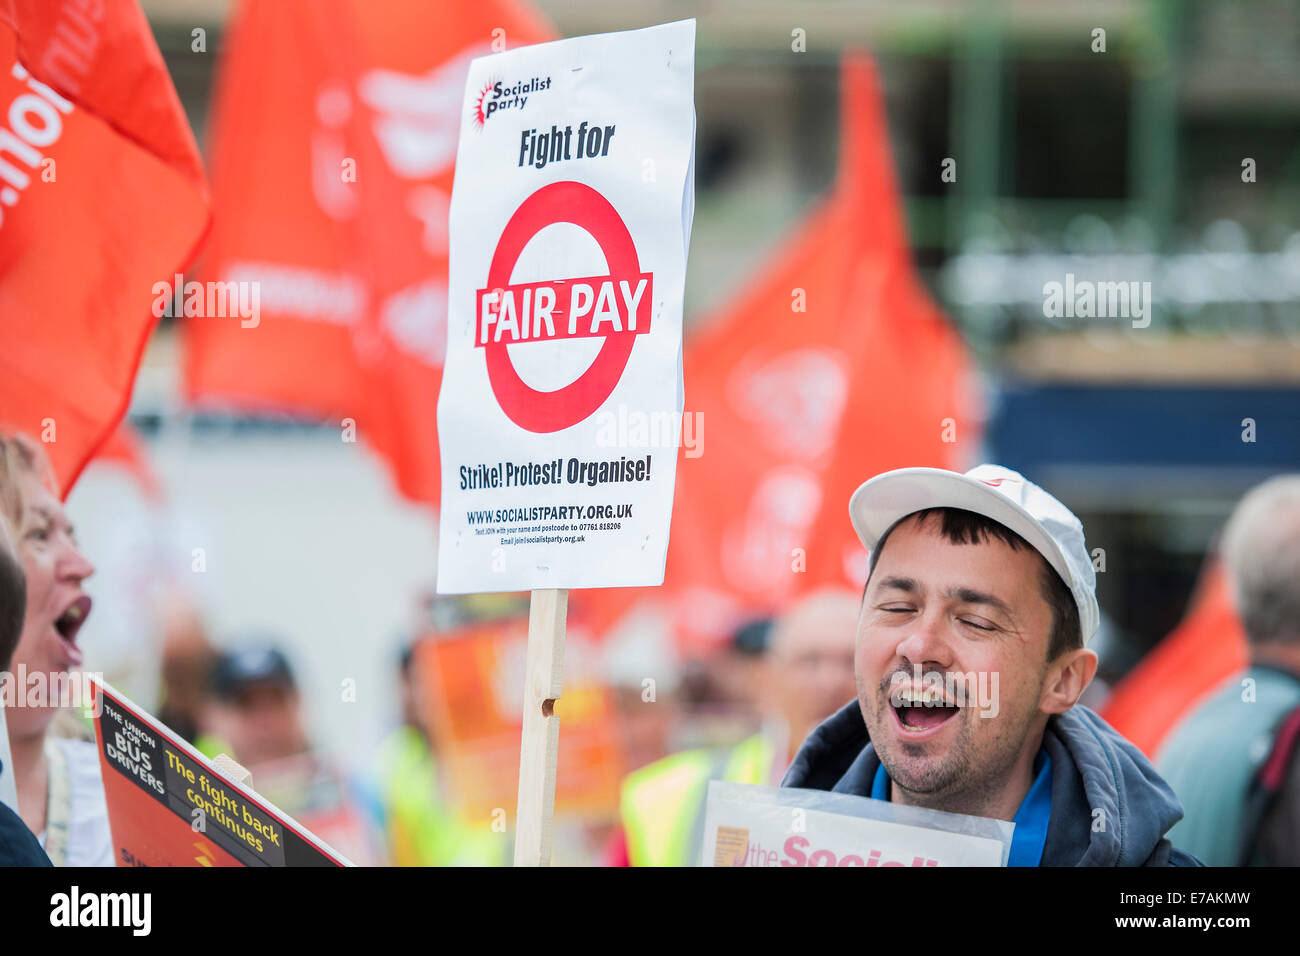 London, UK. 11th September, 2014. Bus drivers and members of Unite protest about unequal pay (and terms and conditions) - Stock Image